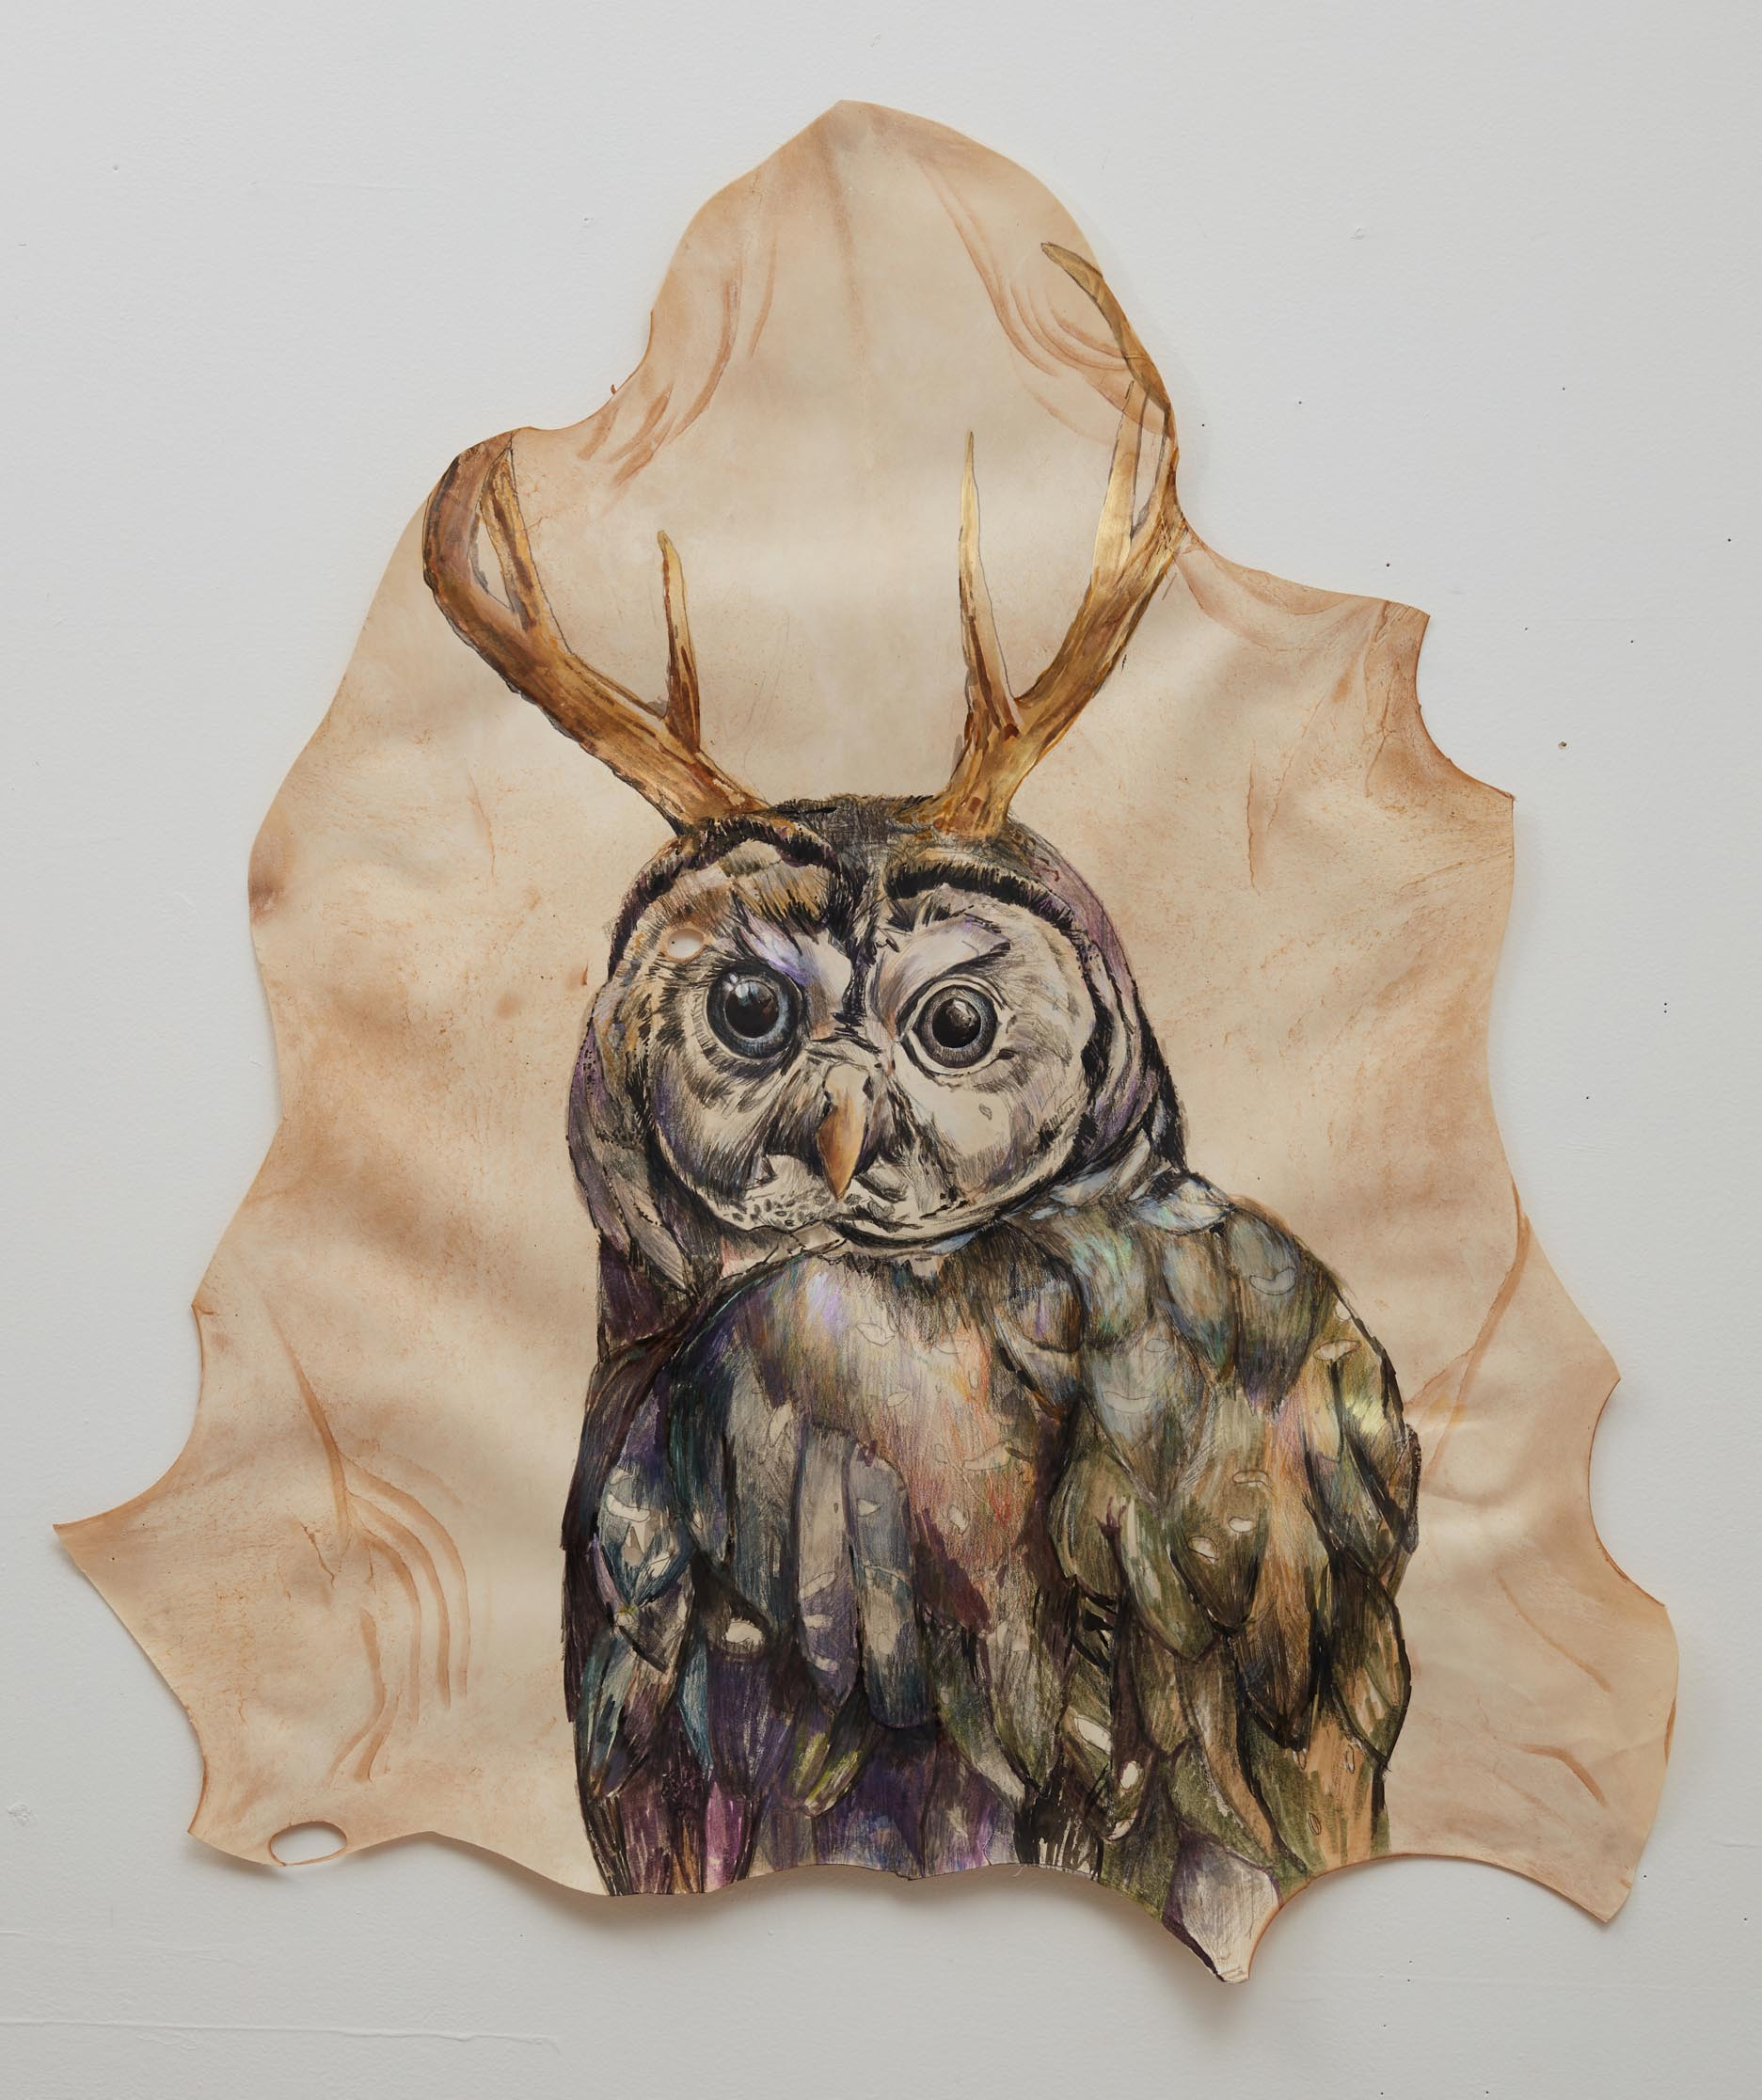 Athena's child, watercolour and pencil on goat skin, 80x92cm framed